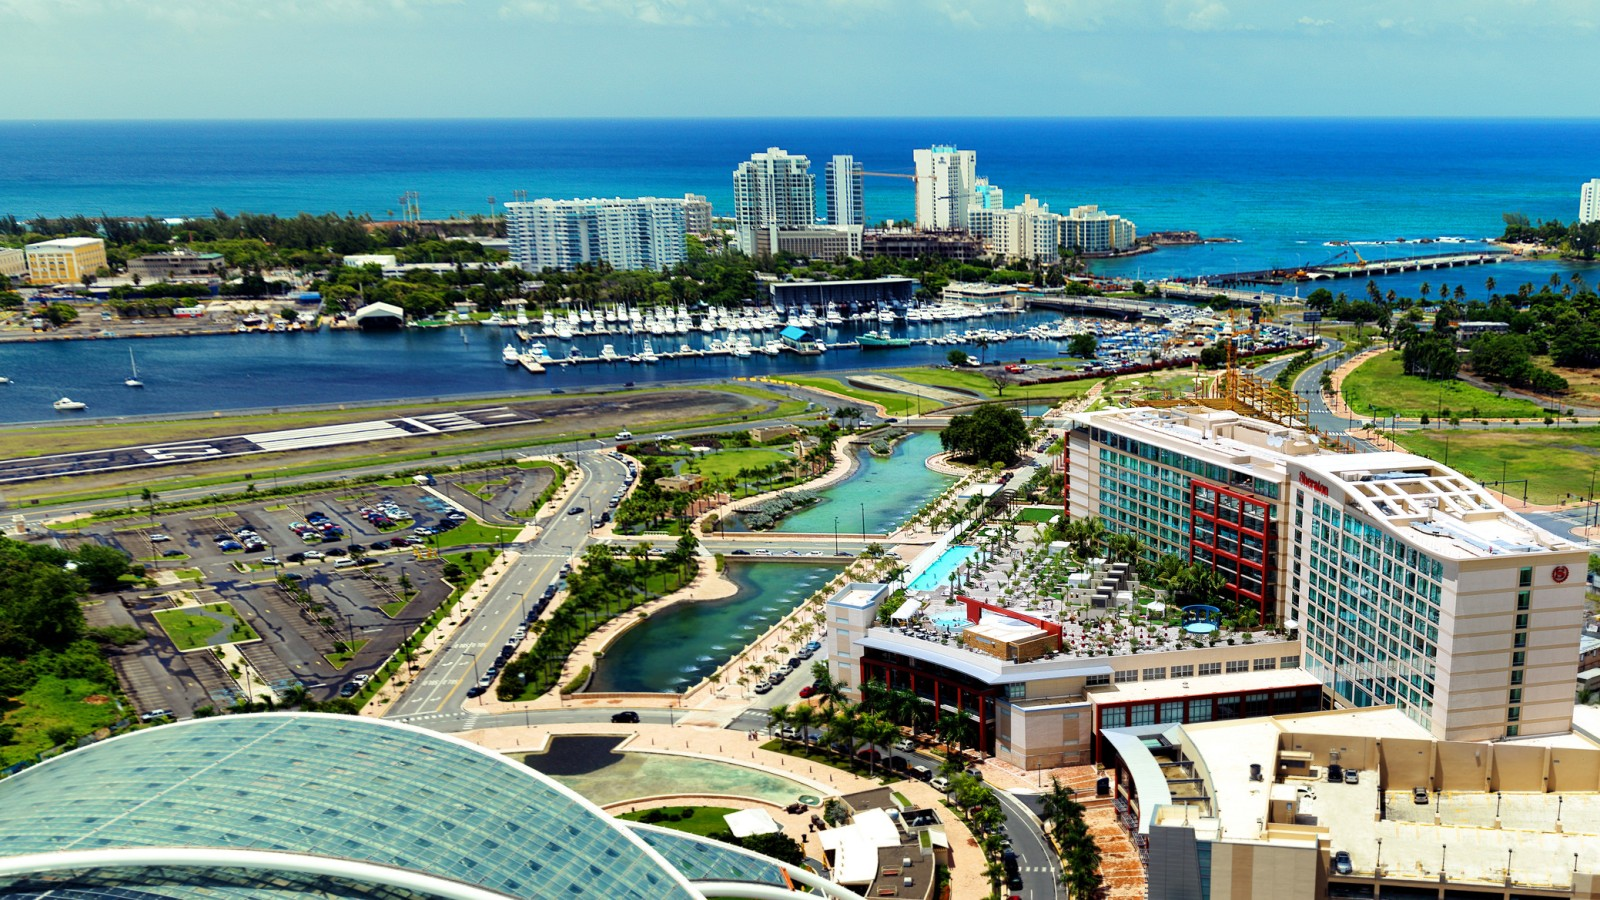 Sheraton Puerto Rico Hotel & Casino- The Mall of San Juan